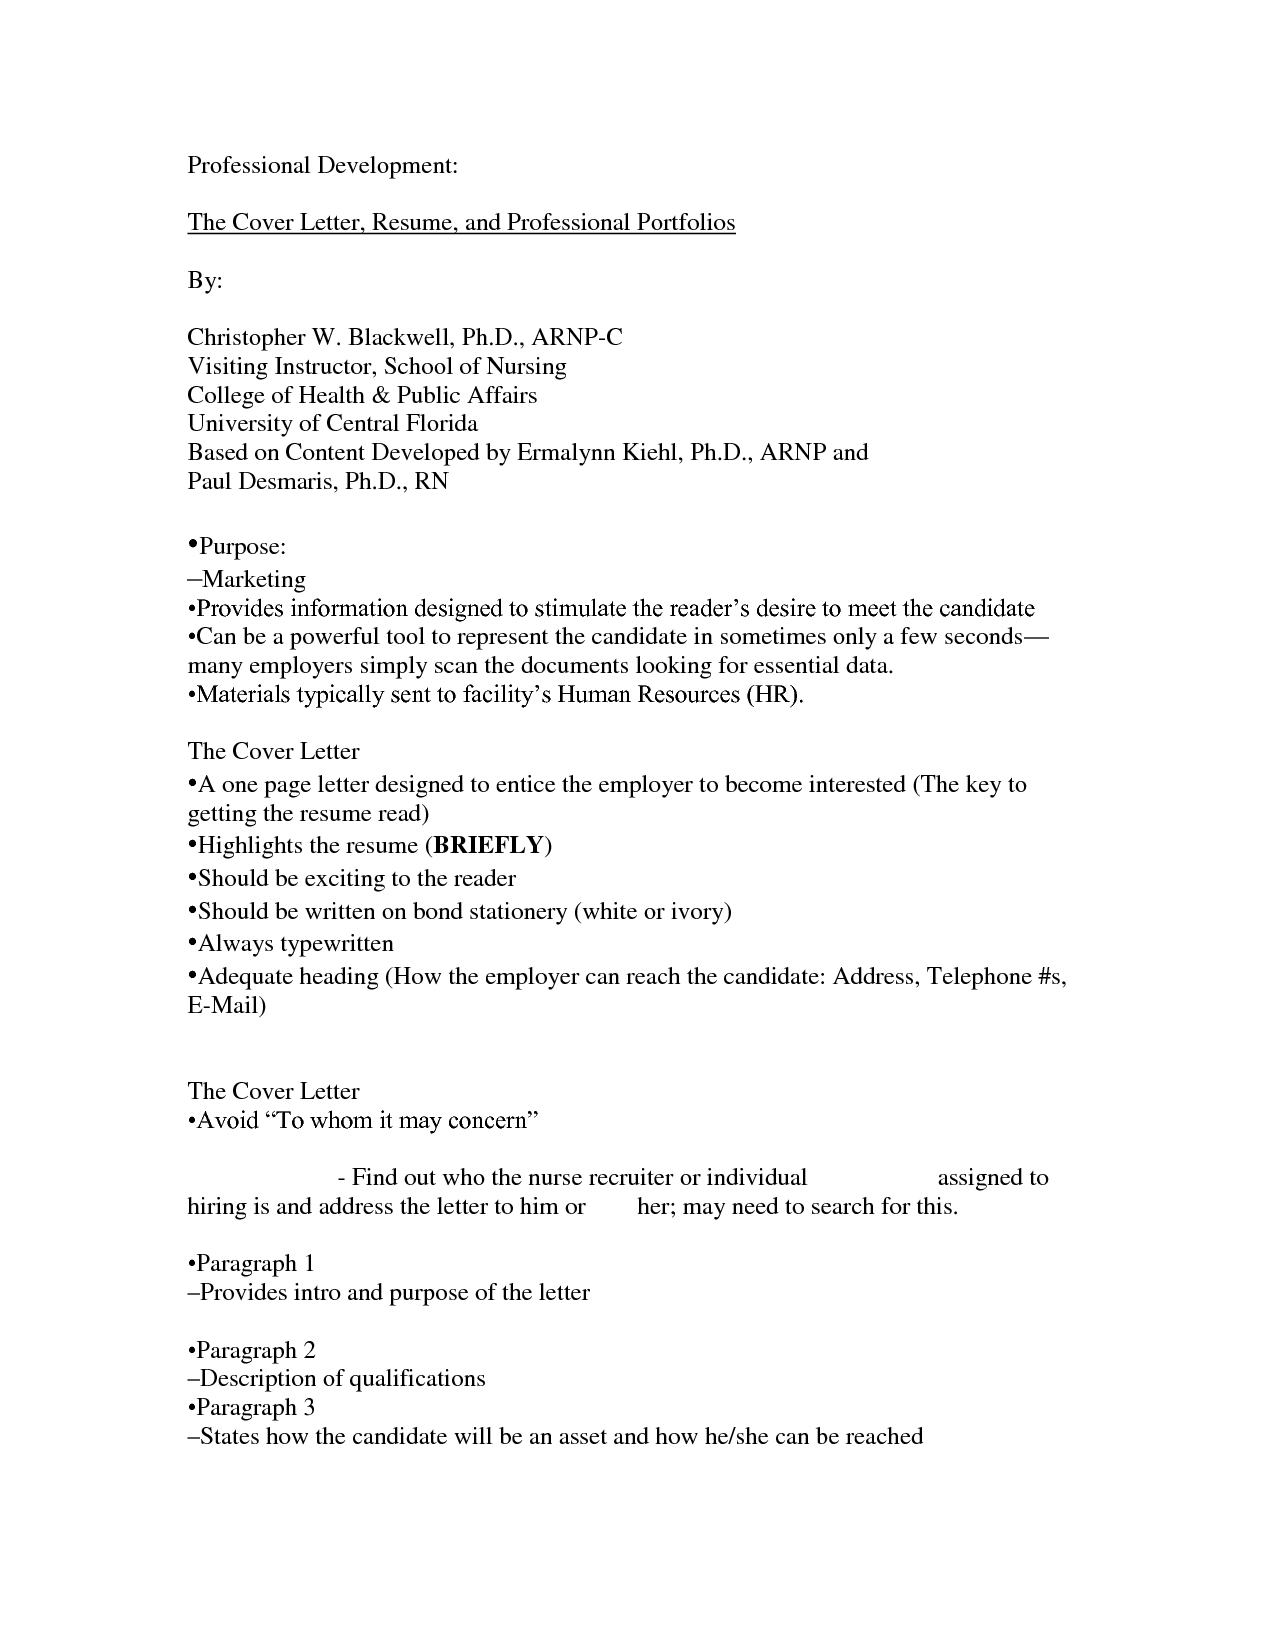 cover letter professional position